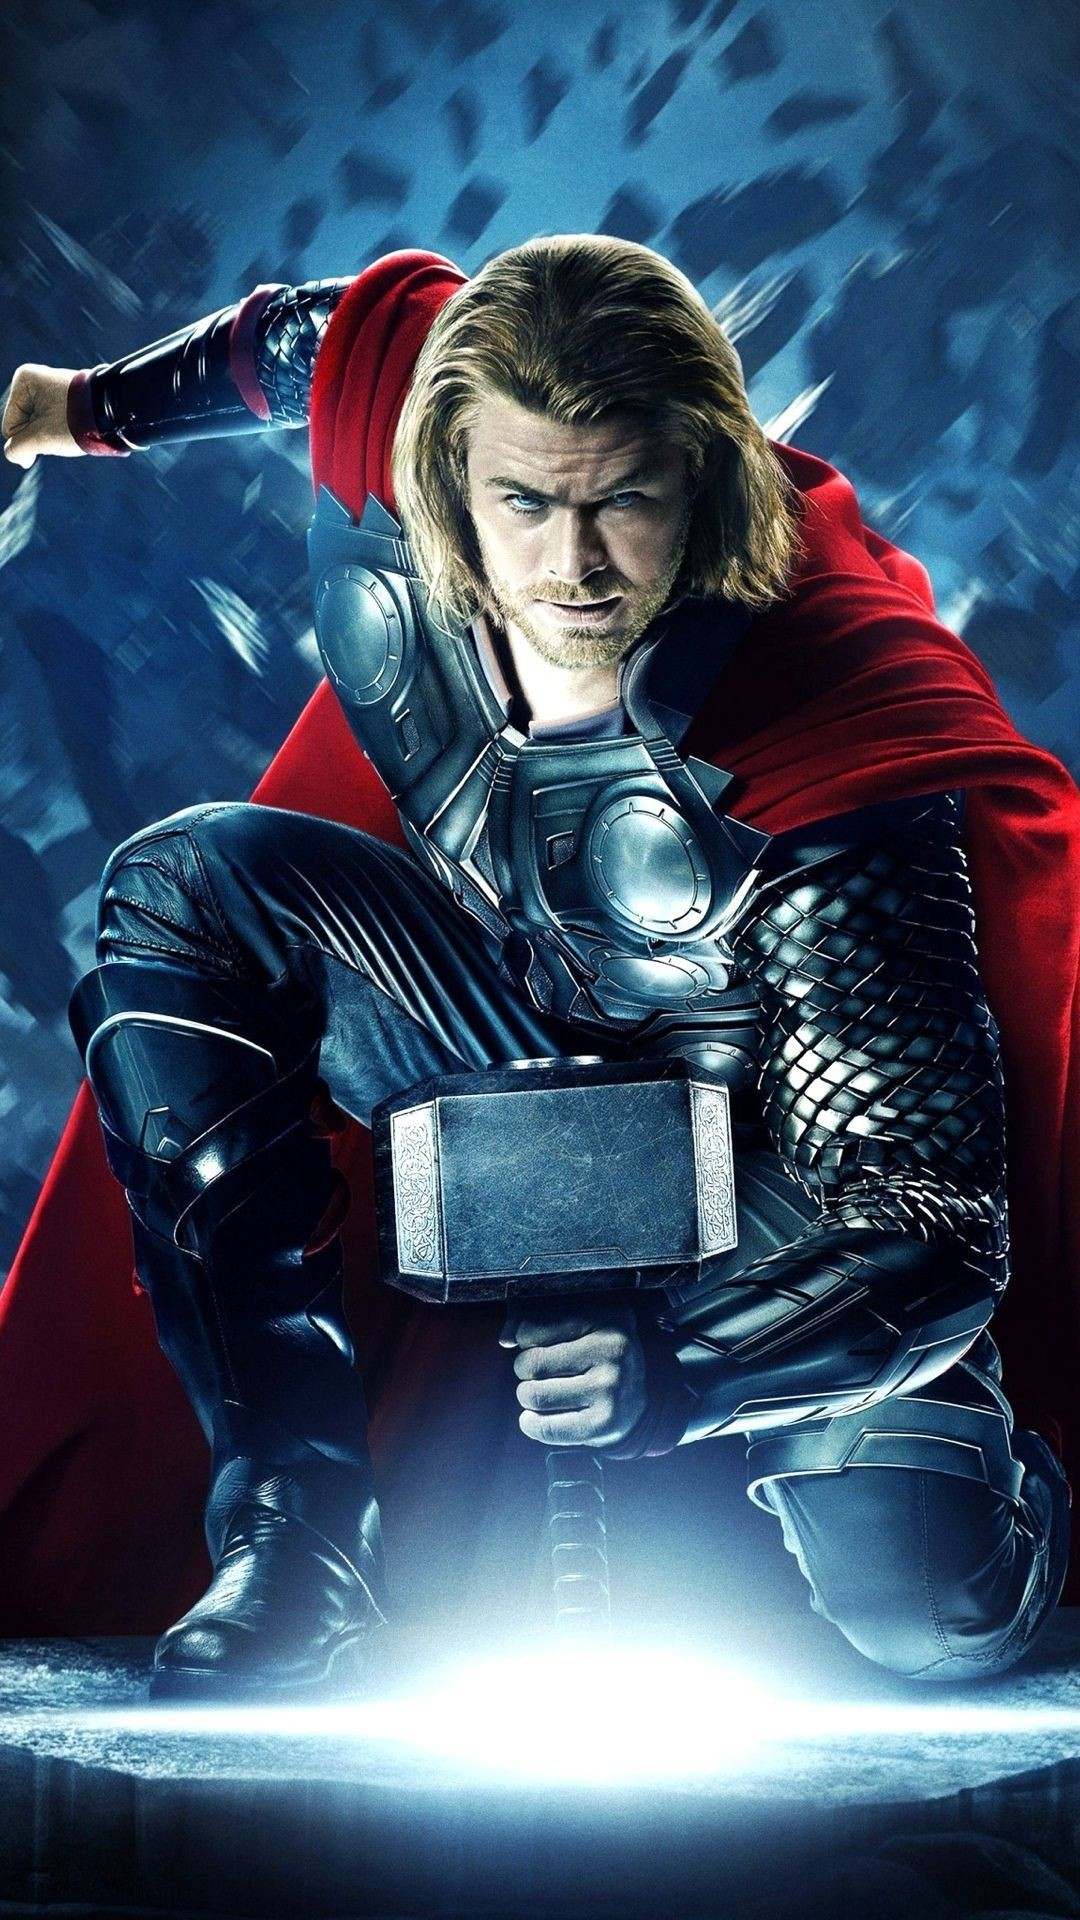 Thor movie wallpaper 81 images - Thor wallpaper ...